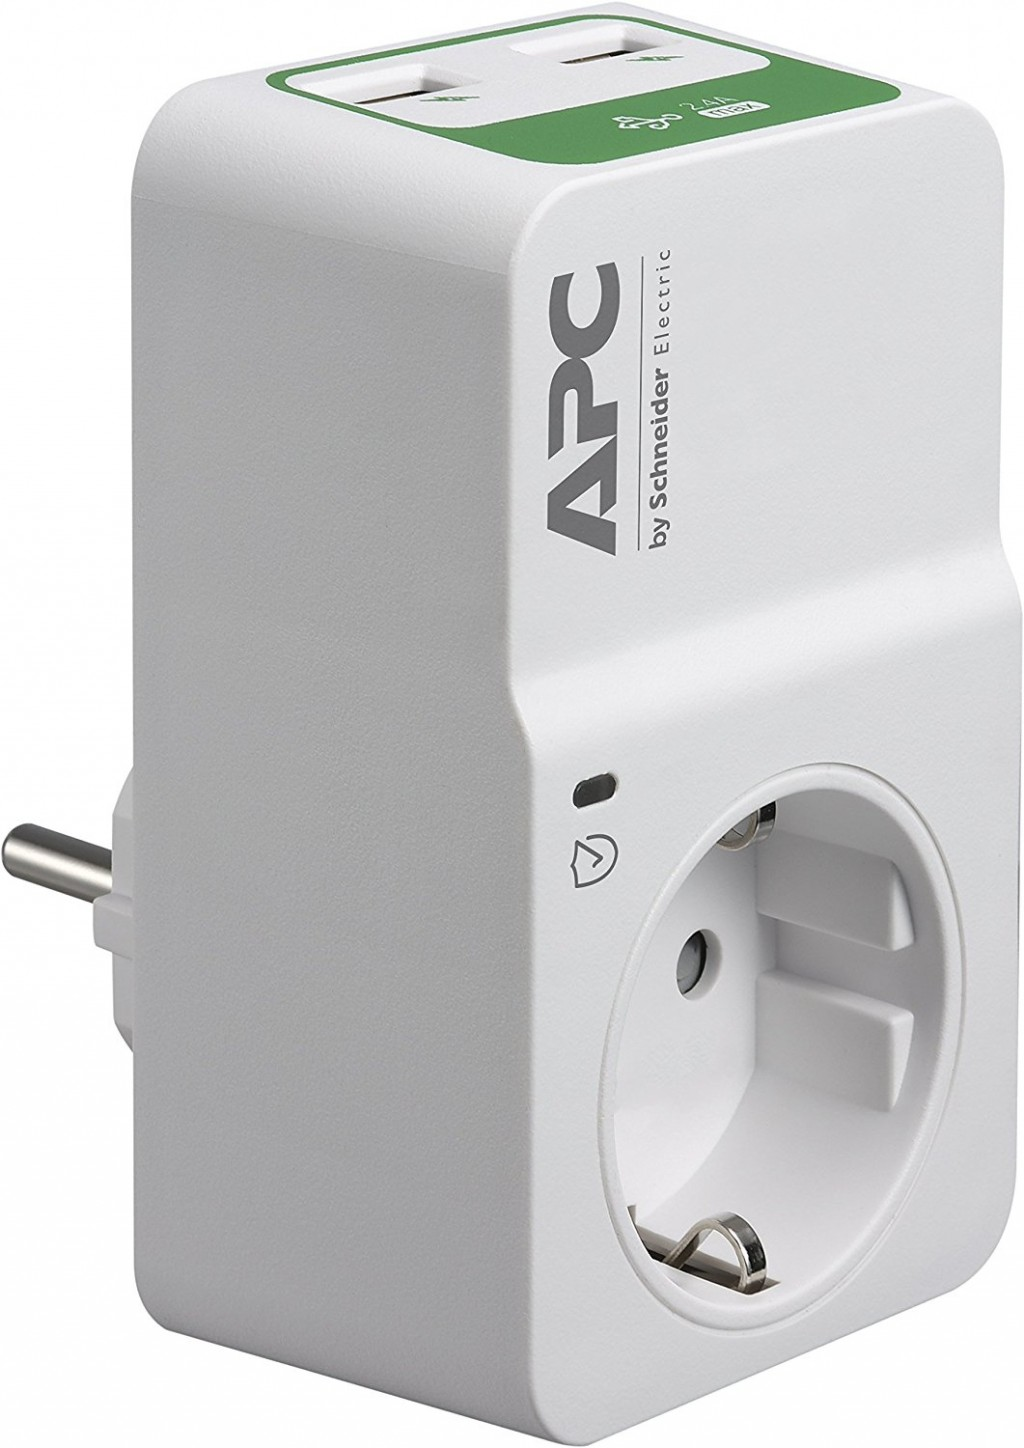 APC Essential SurgeArrest 1 Outlet 230V